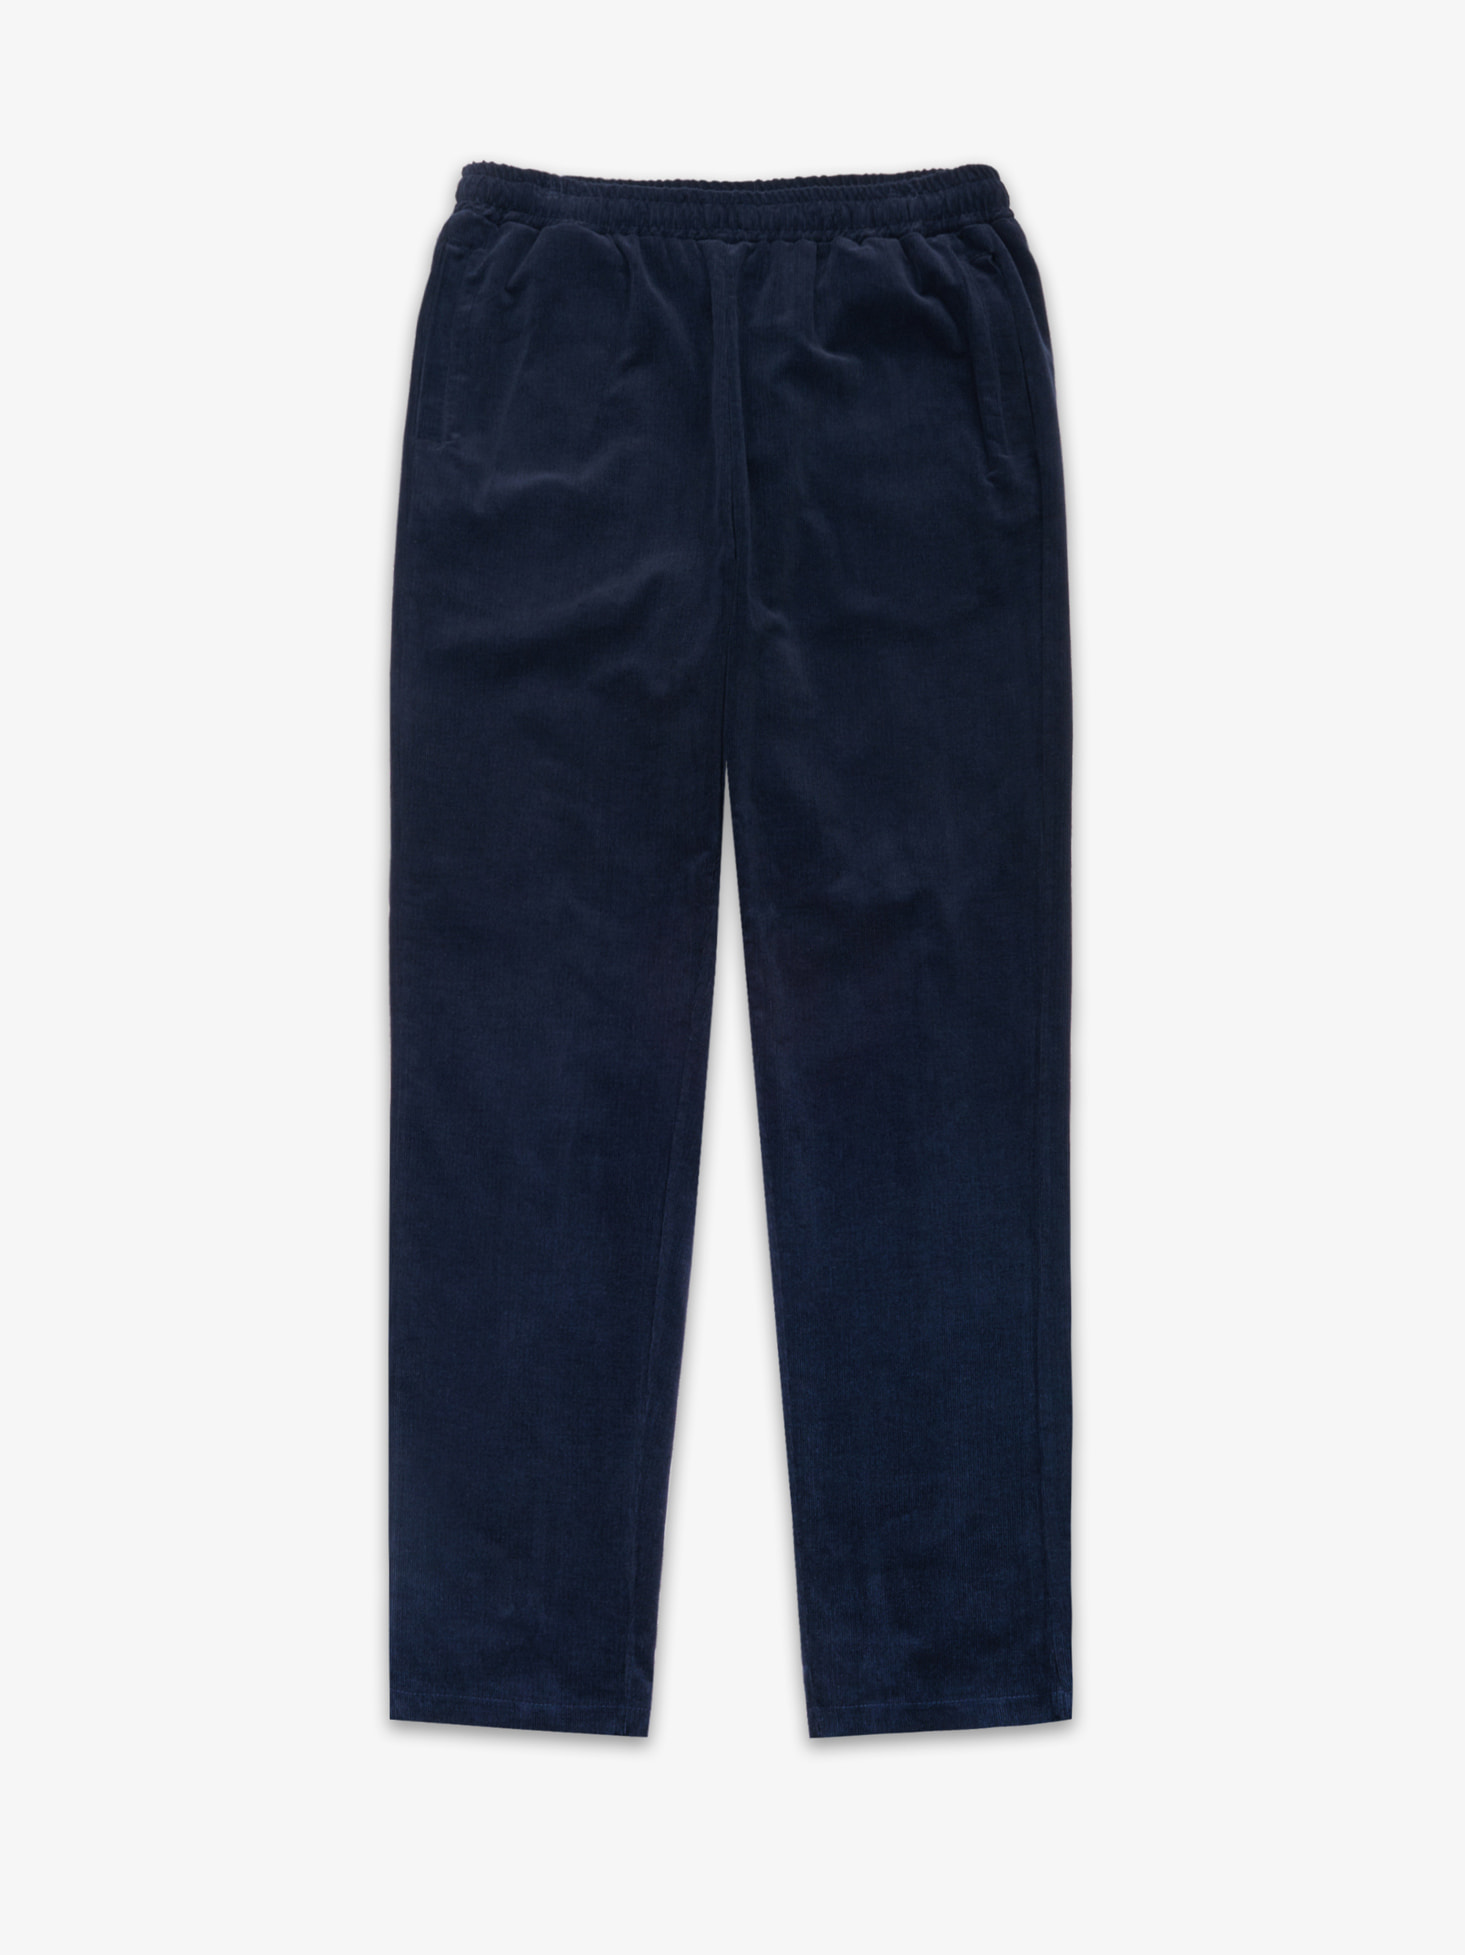 3-DIMENSIONAL PANTS(NAVY CORDUROY)